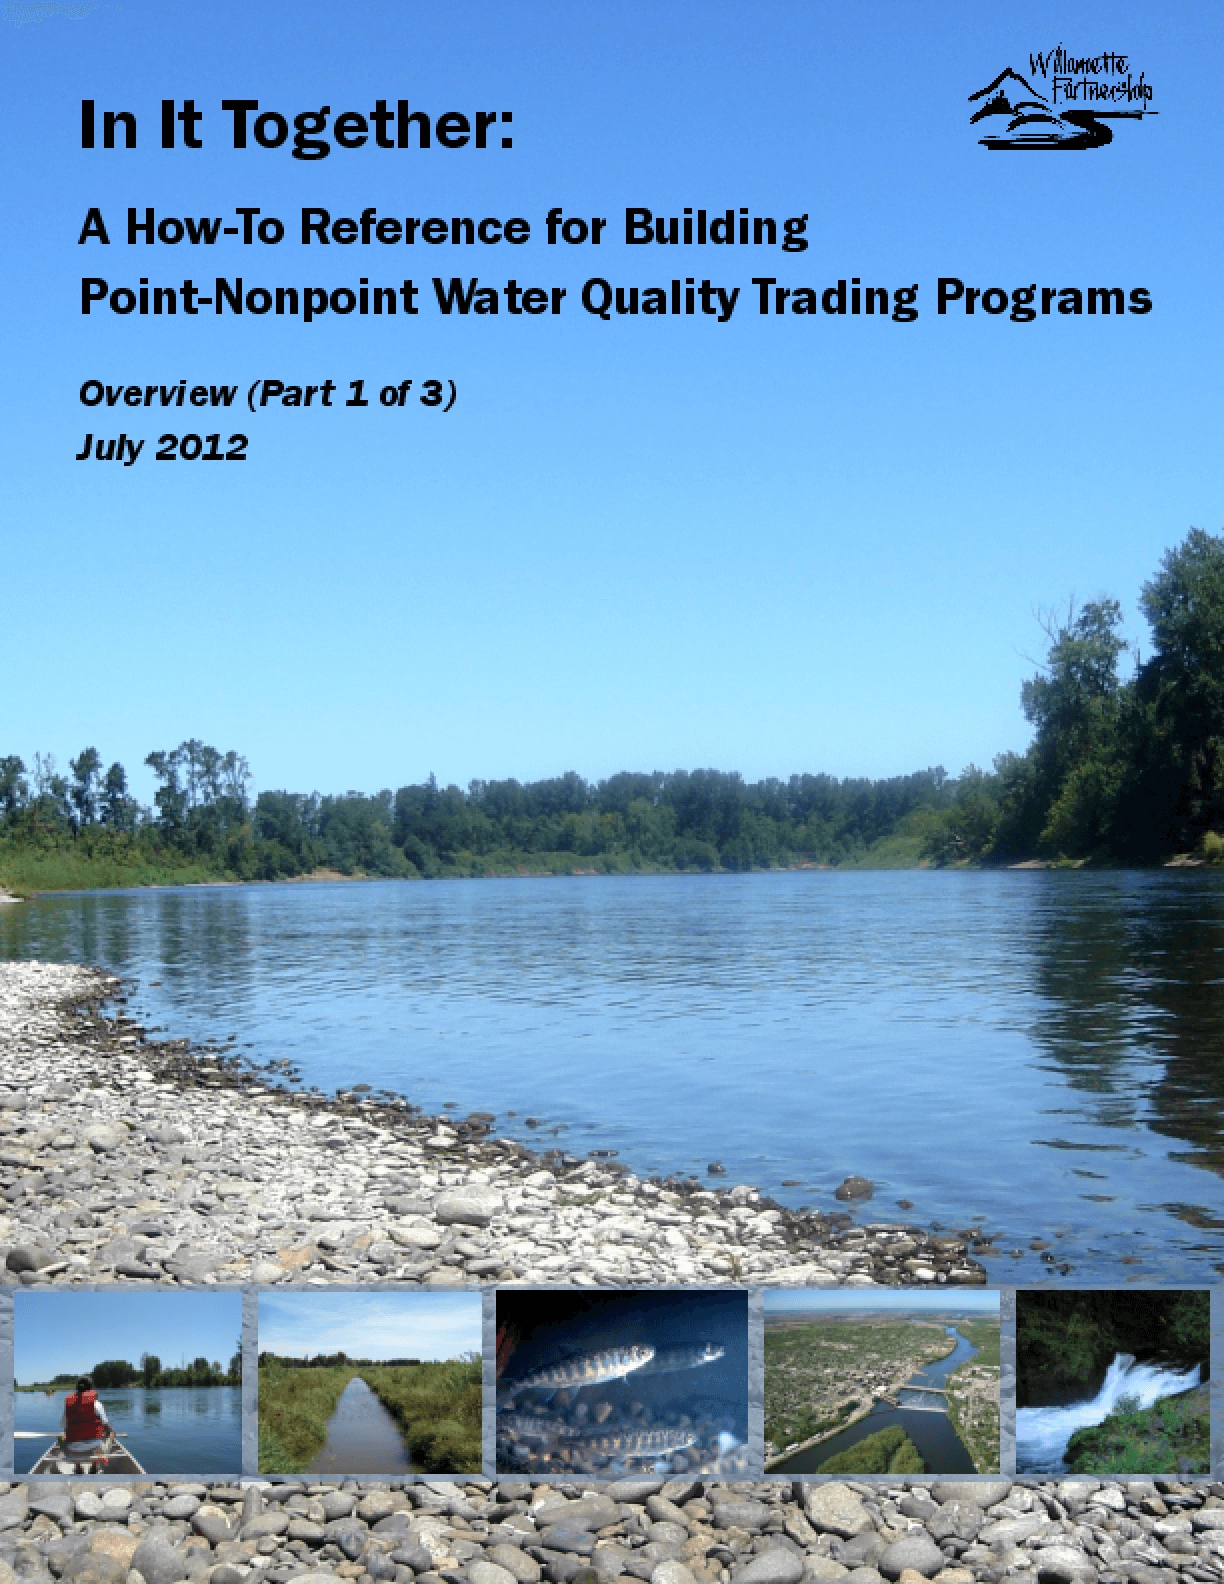 In It Together: A How-To Reference for Building Point-Nonpoint Water Quality Trading Programs (Part 1 of 3)